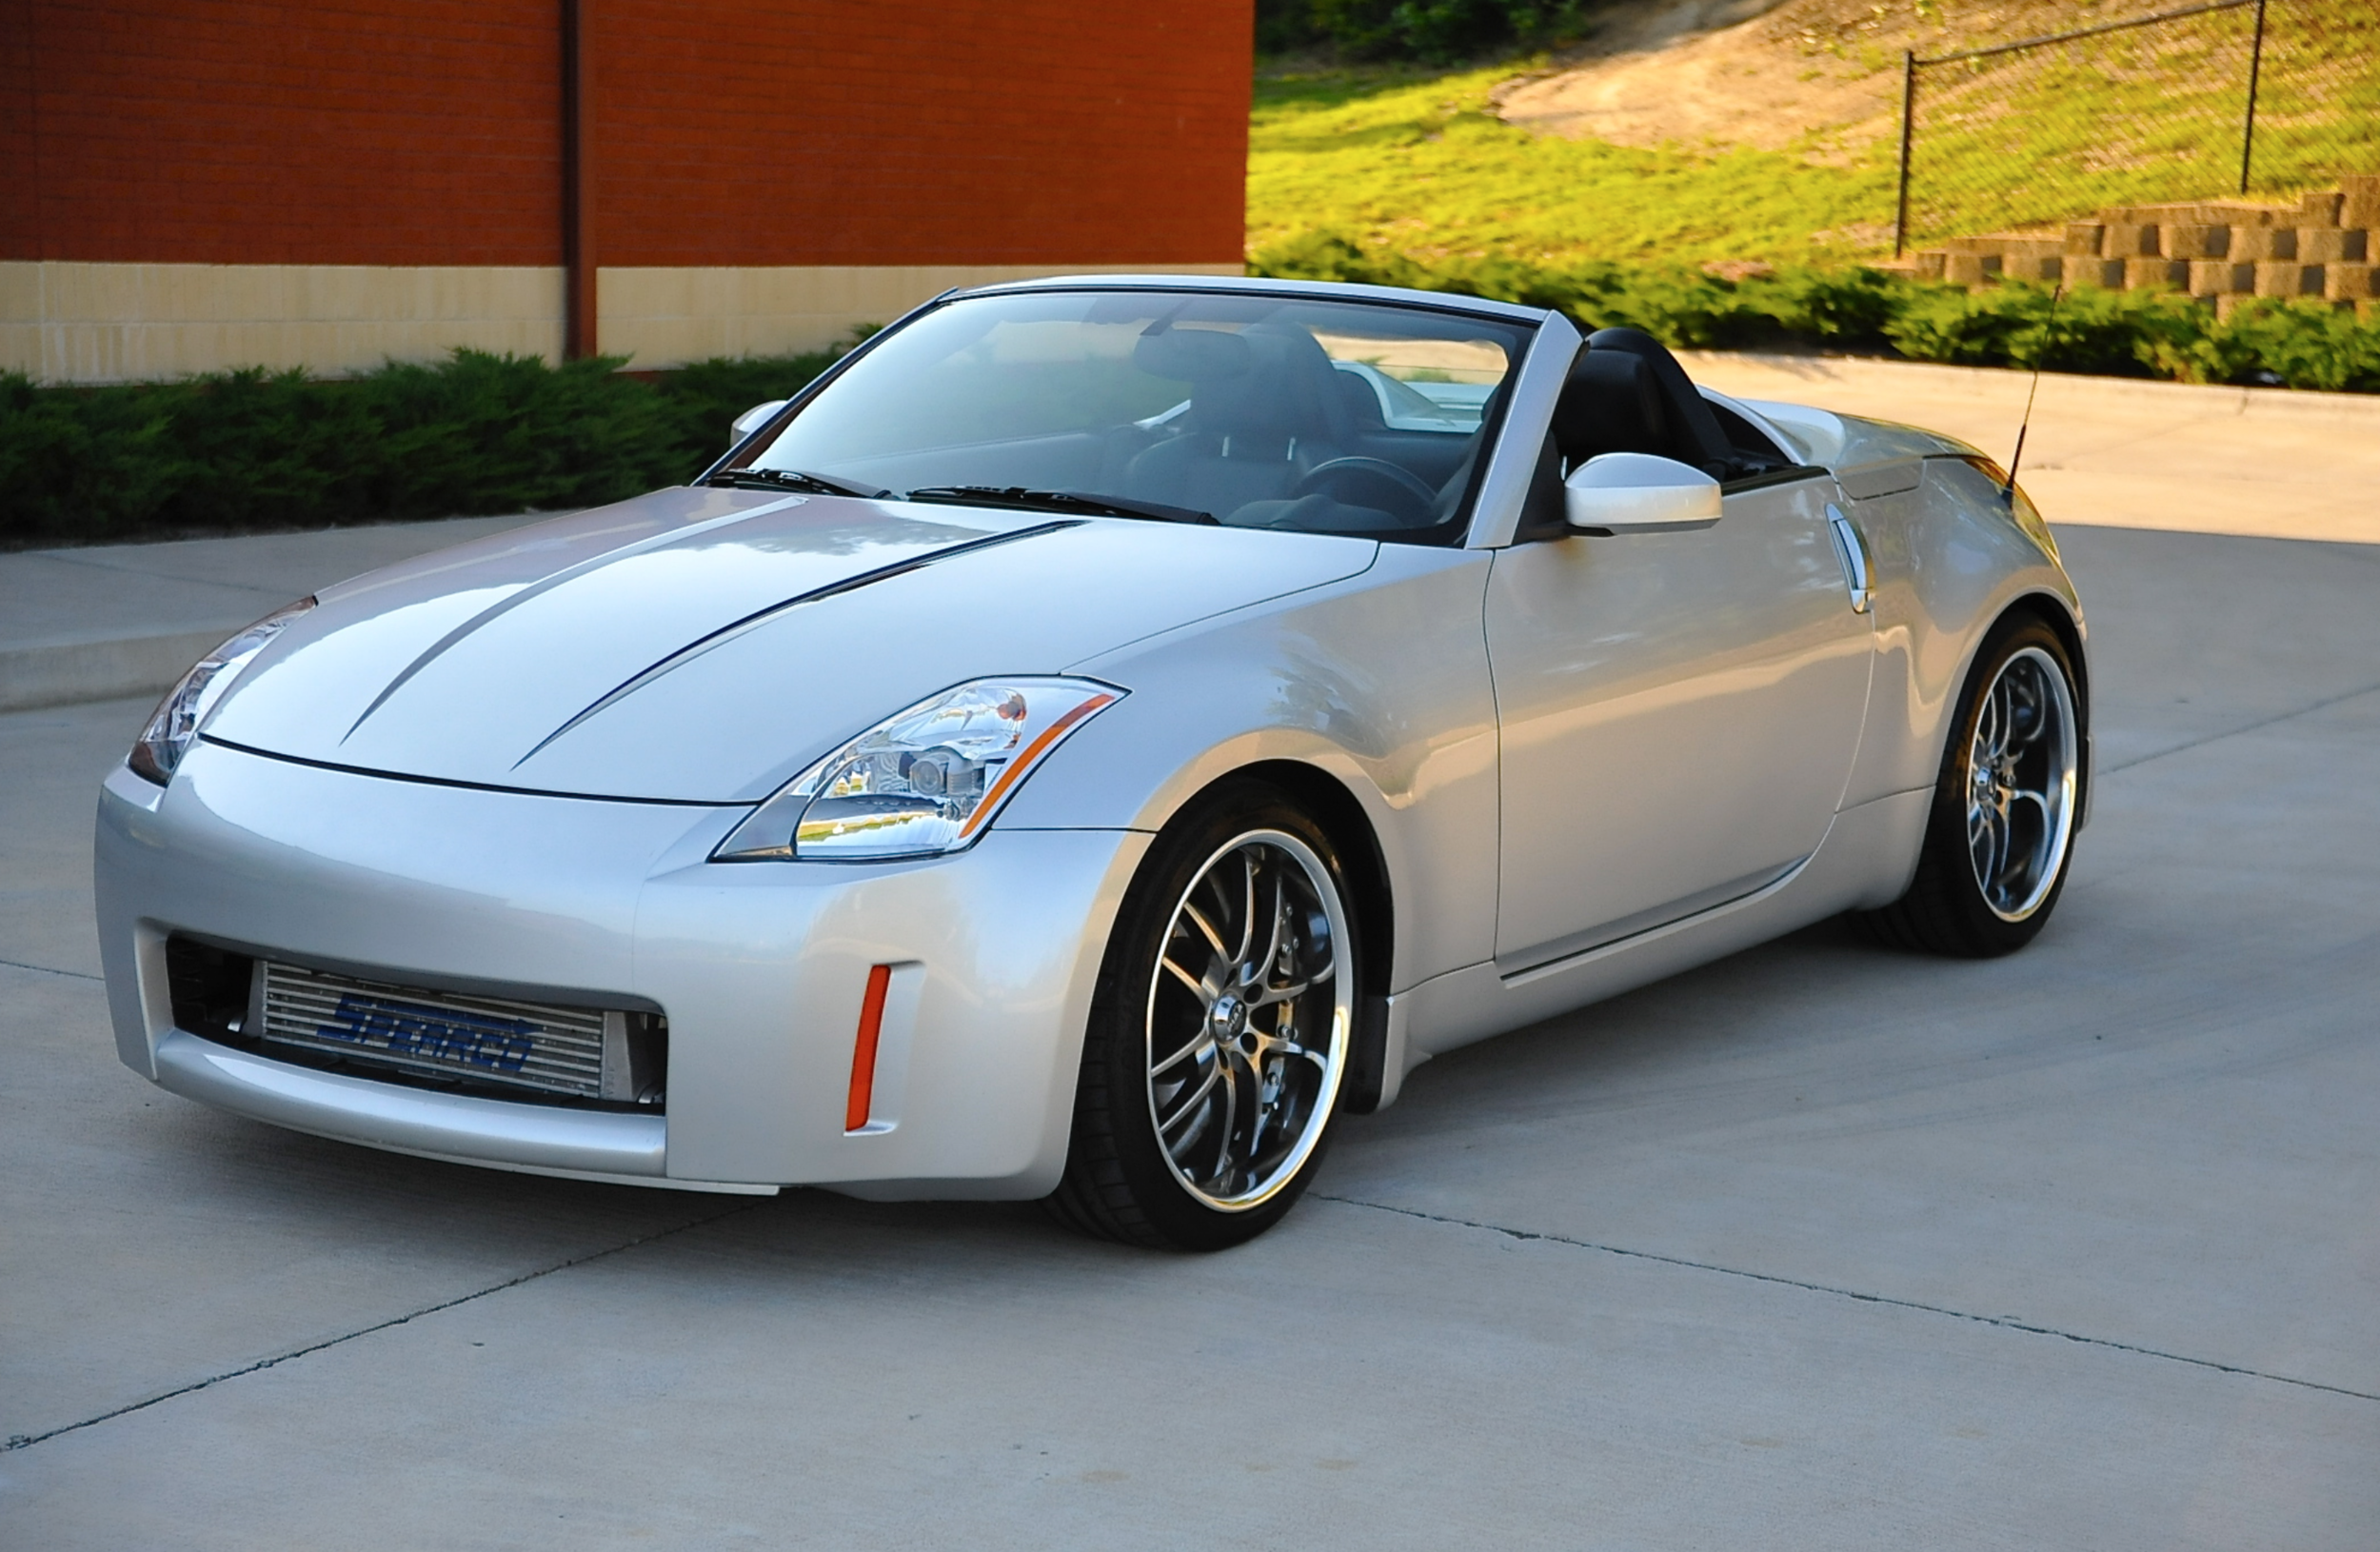 2004 350Z with ONLY 29K Miles...TurboCharged with RARE Piaa Wheels and MUCH More. This 350Z is absolutely as new as they come.